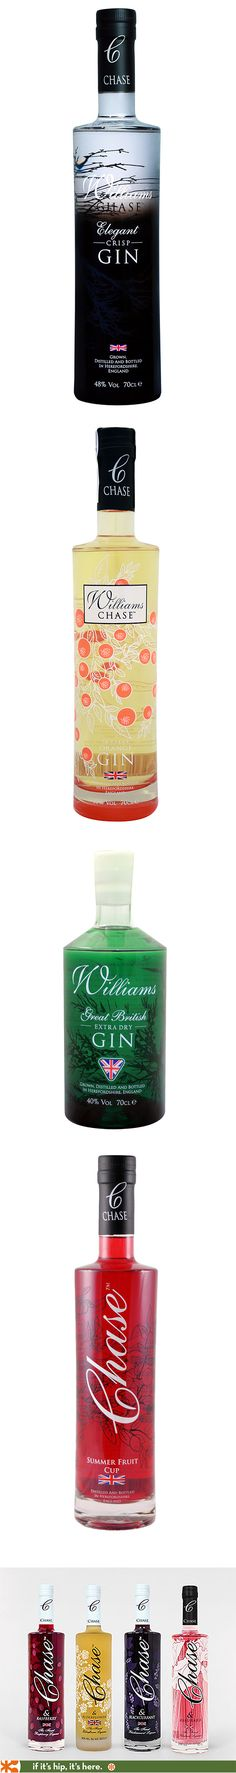 Williams-Chase Crisp Gin, Orange Seville Gin, Extra Dry Gin, Summer Fruit Cup and Flavored Liqueur bottles are all so pretty.